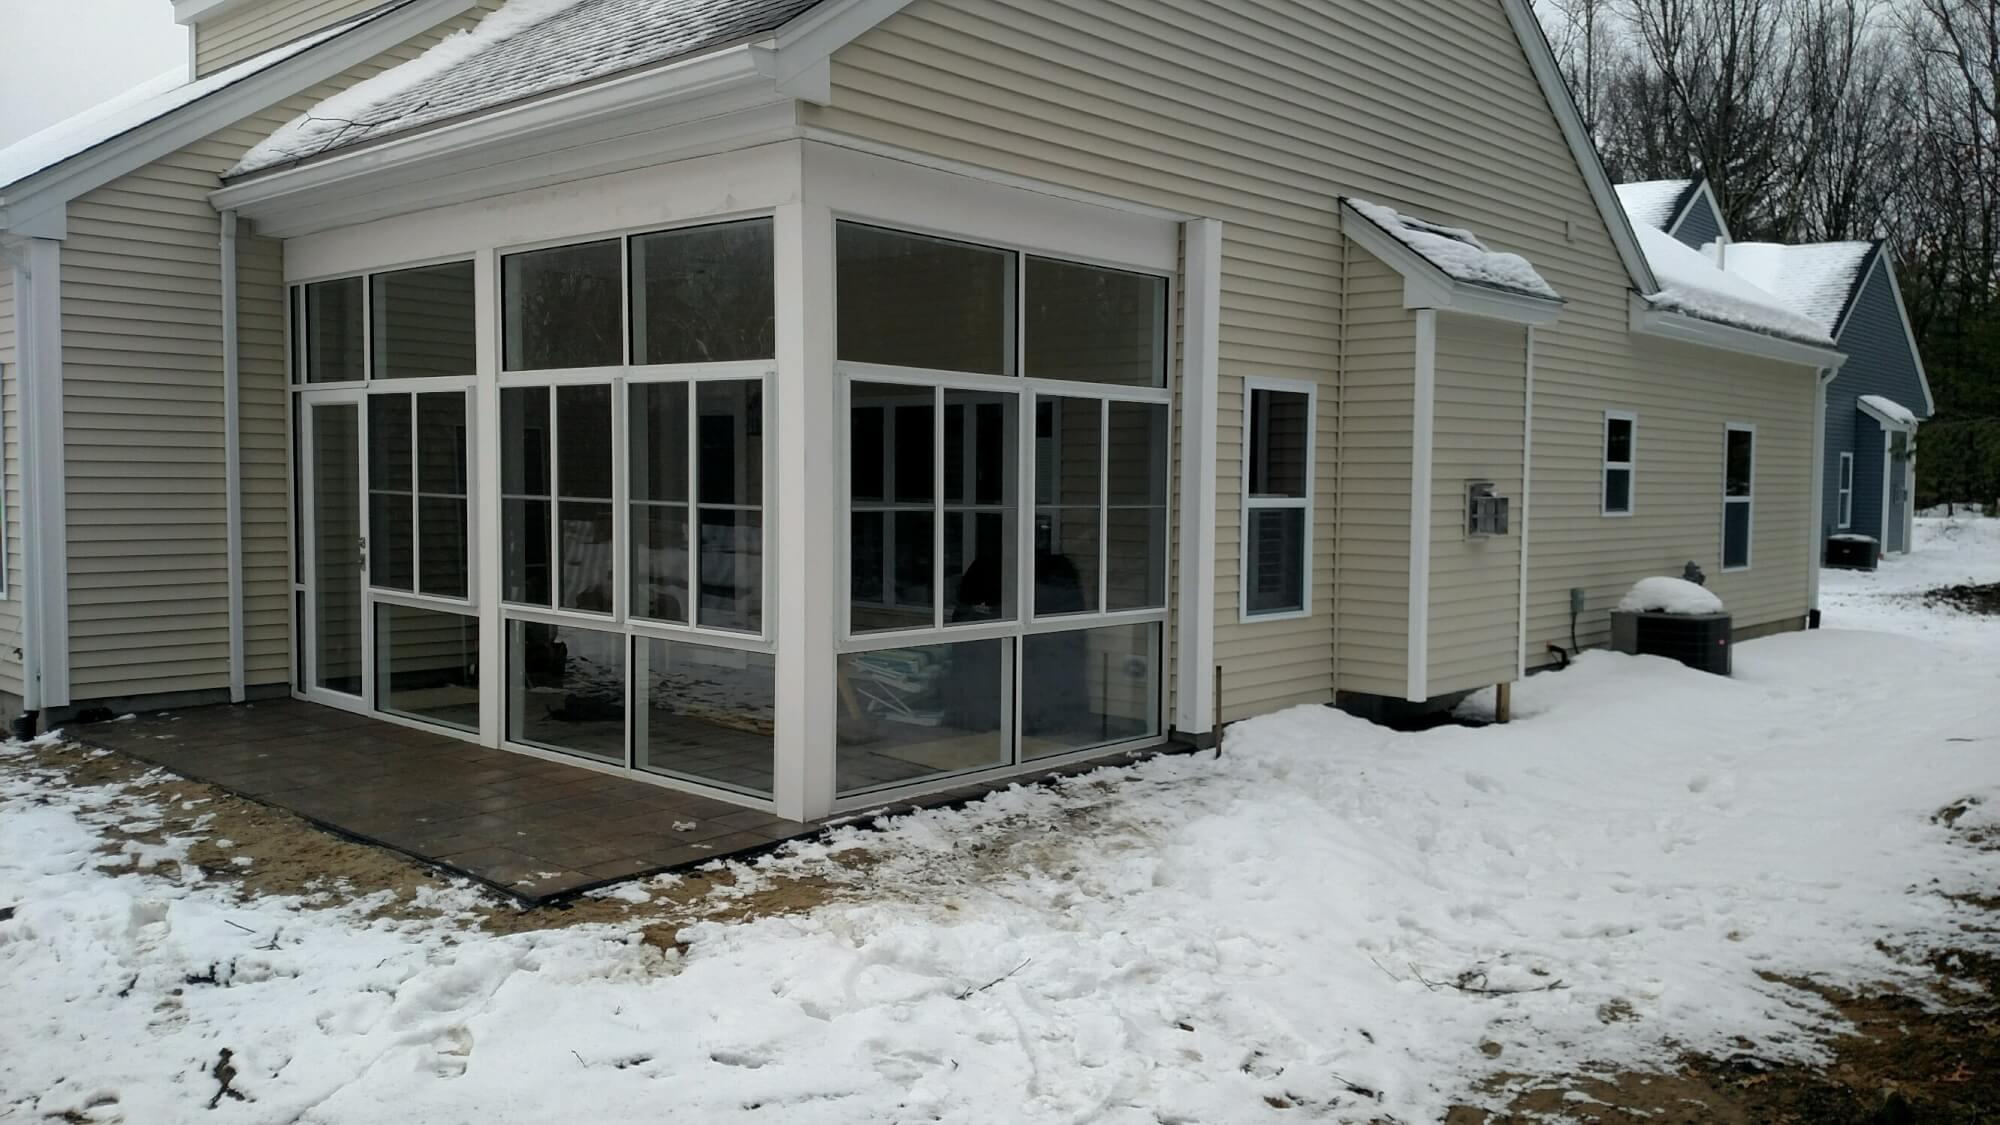 rooms solariums betterliving sunrooms patio enclosedporch four season enclosure sun room